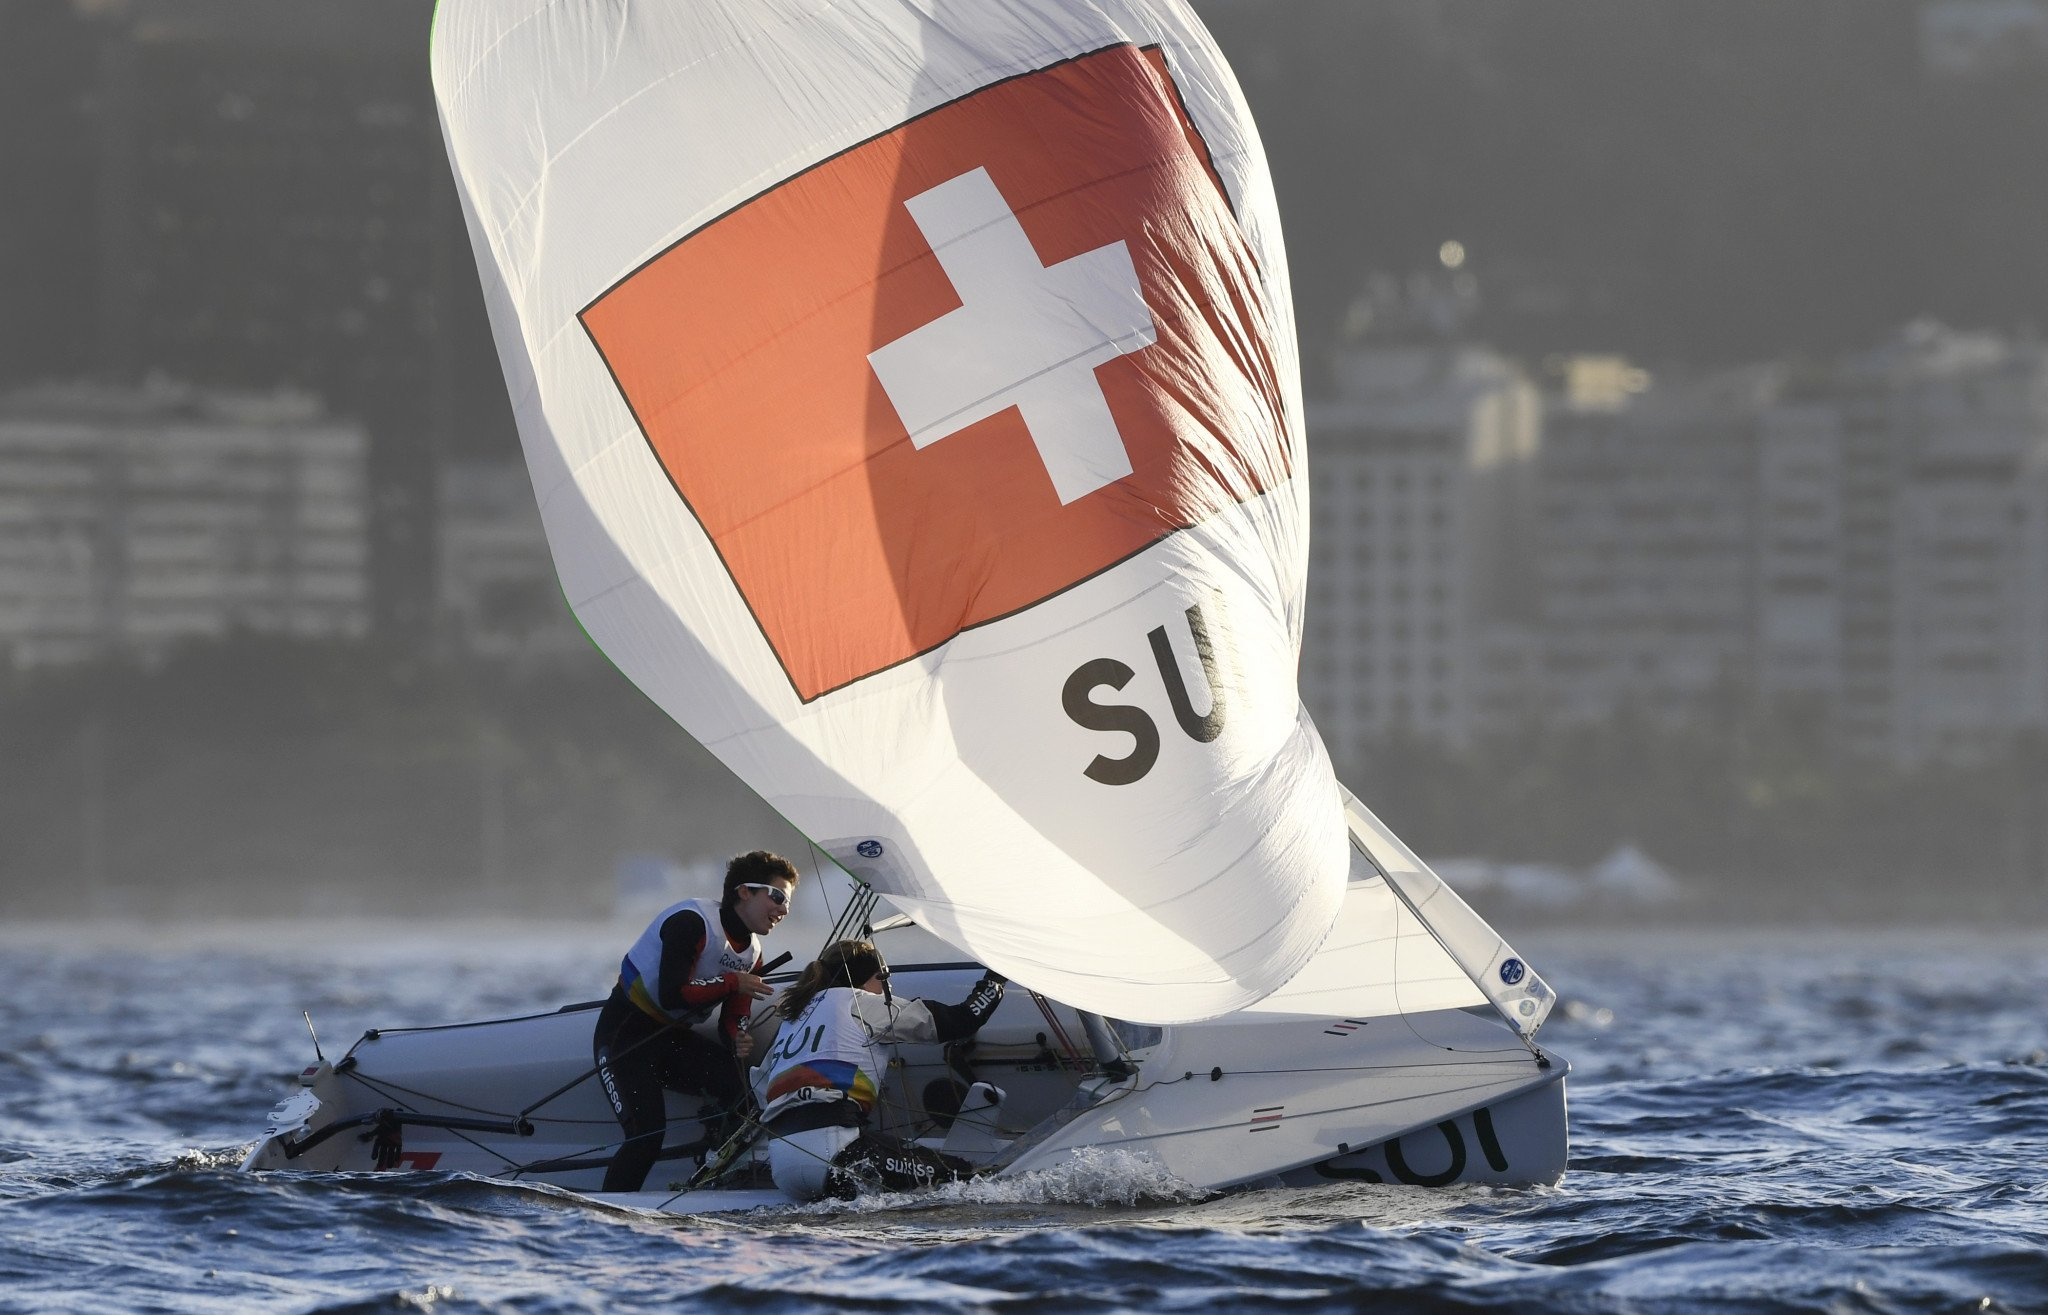 Sailors Fahrni and Siegenthaler latest athletes confirmed on Swiss team for Tokyo 2020